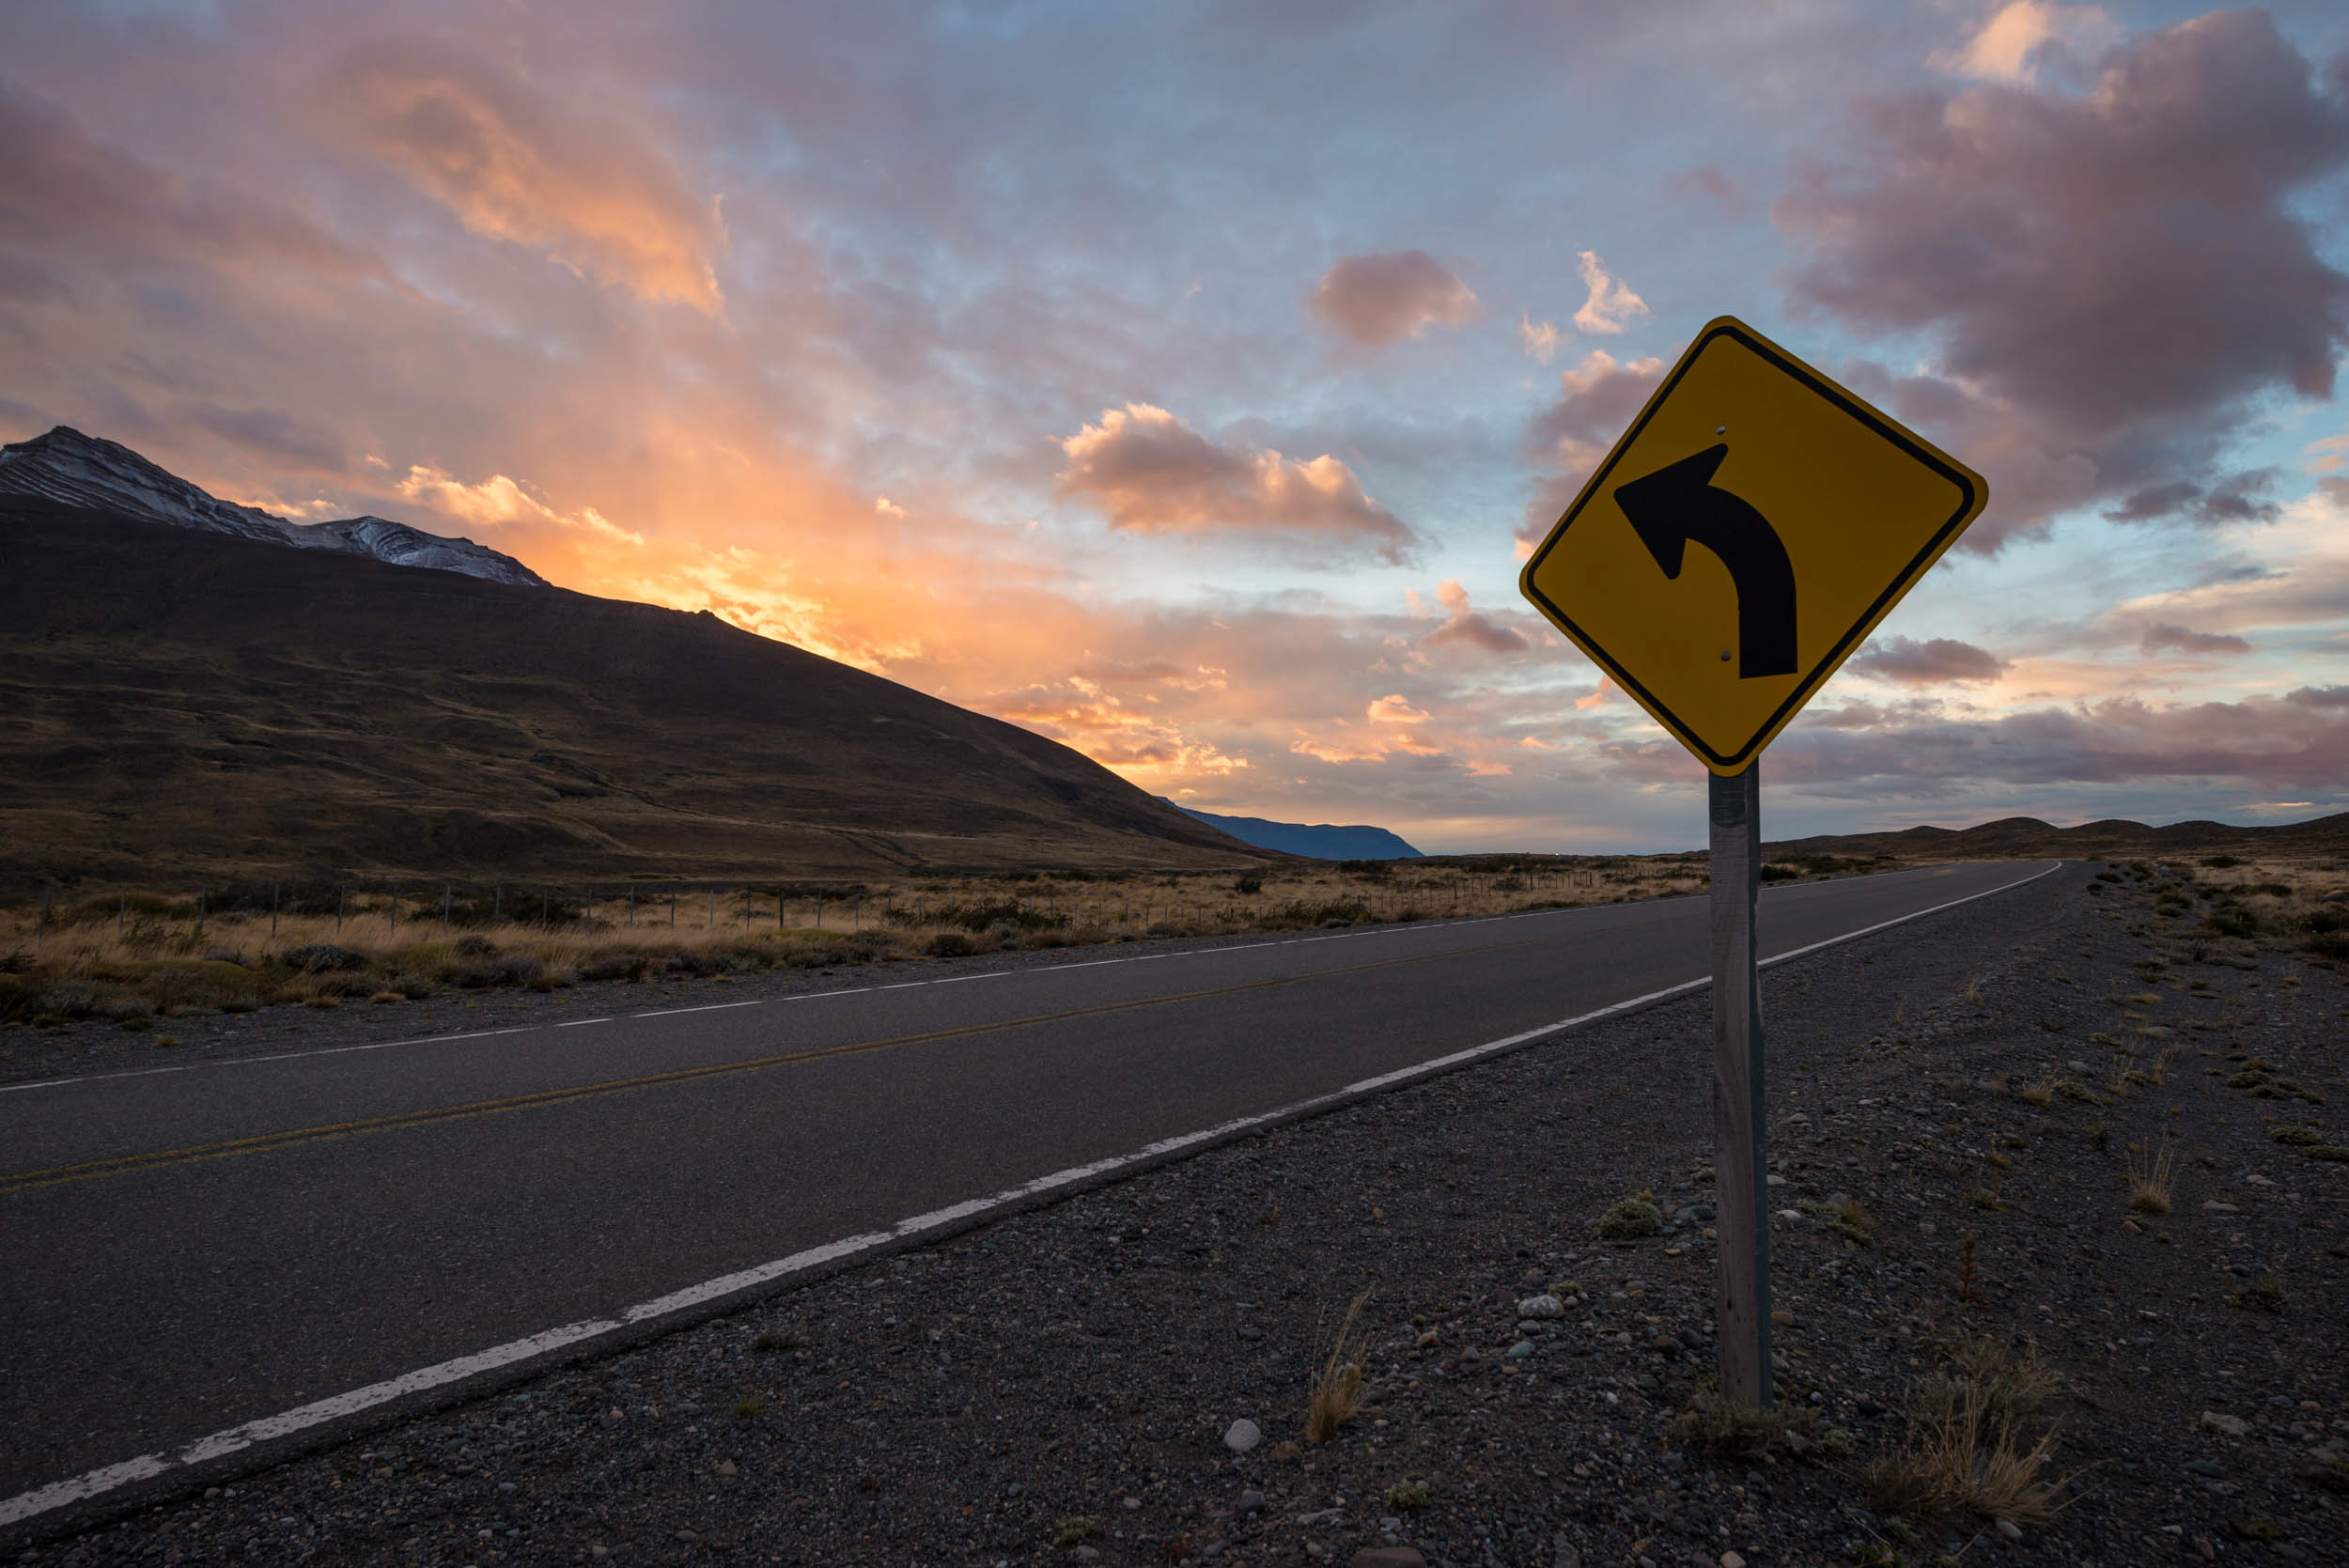 road-sign-dawn-scenic-patagonia-argentina-sunrise